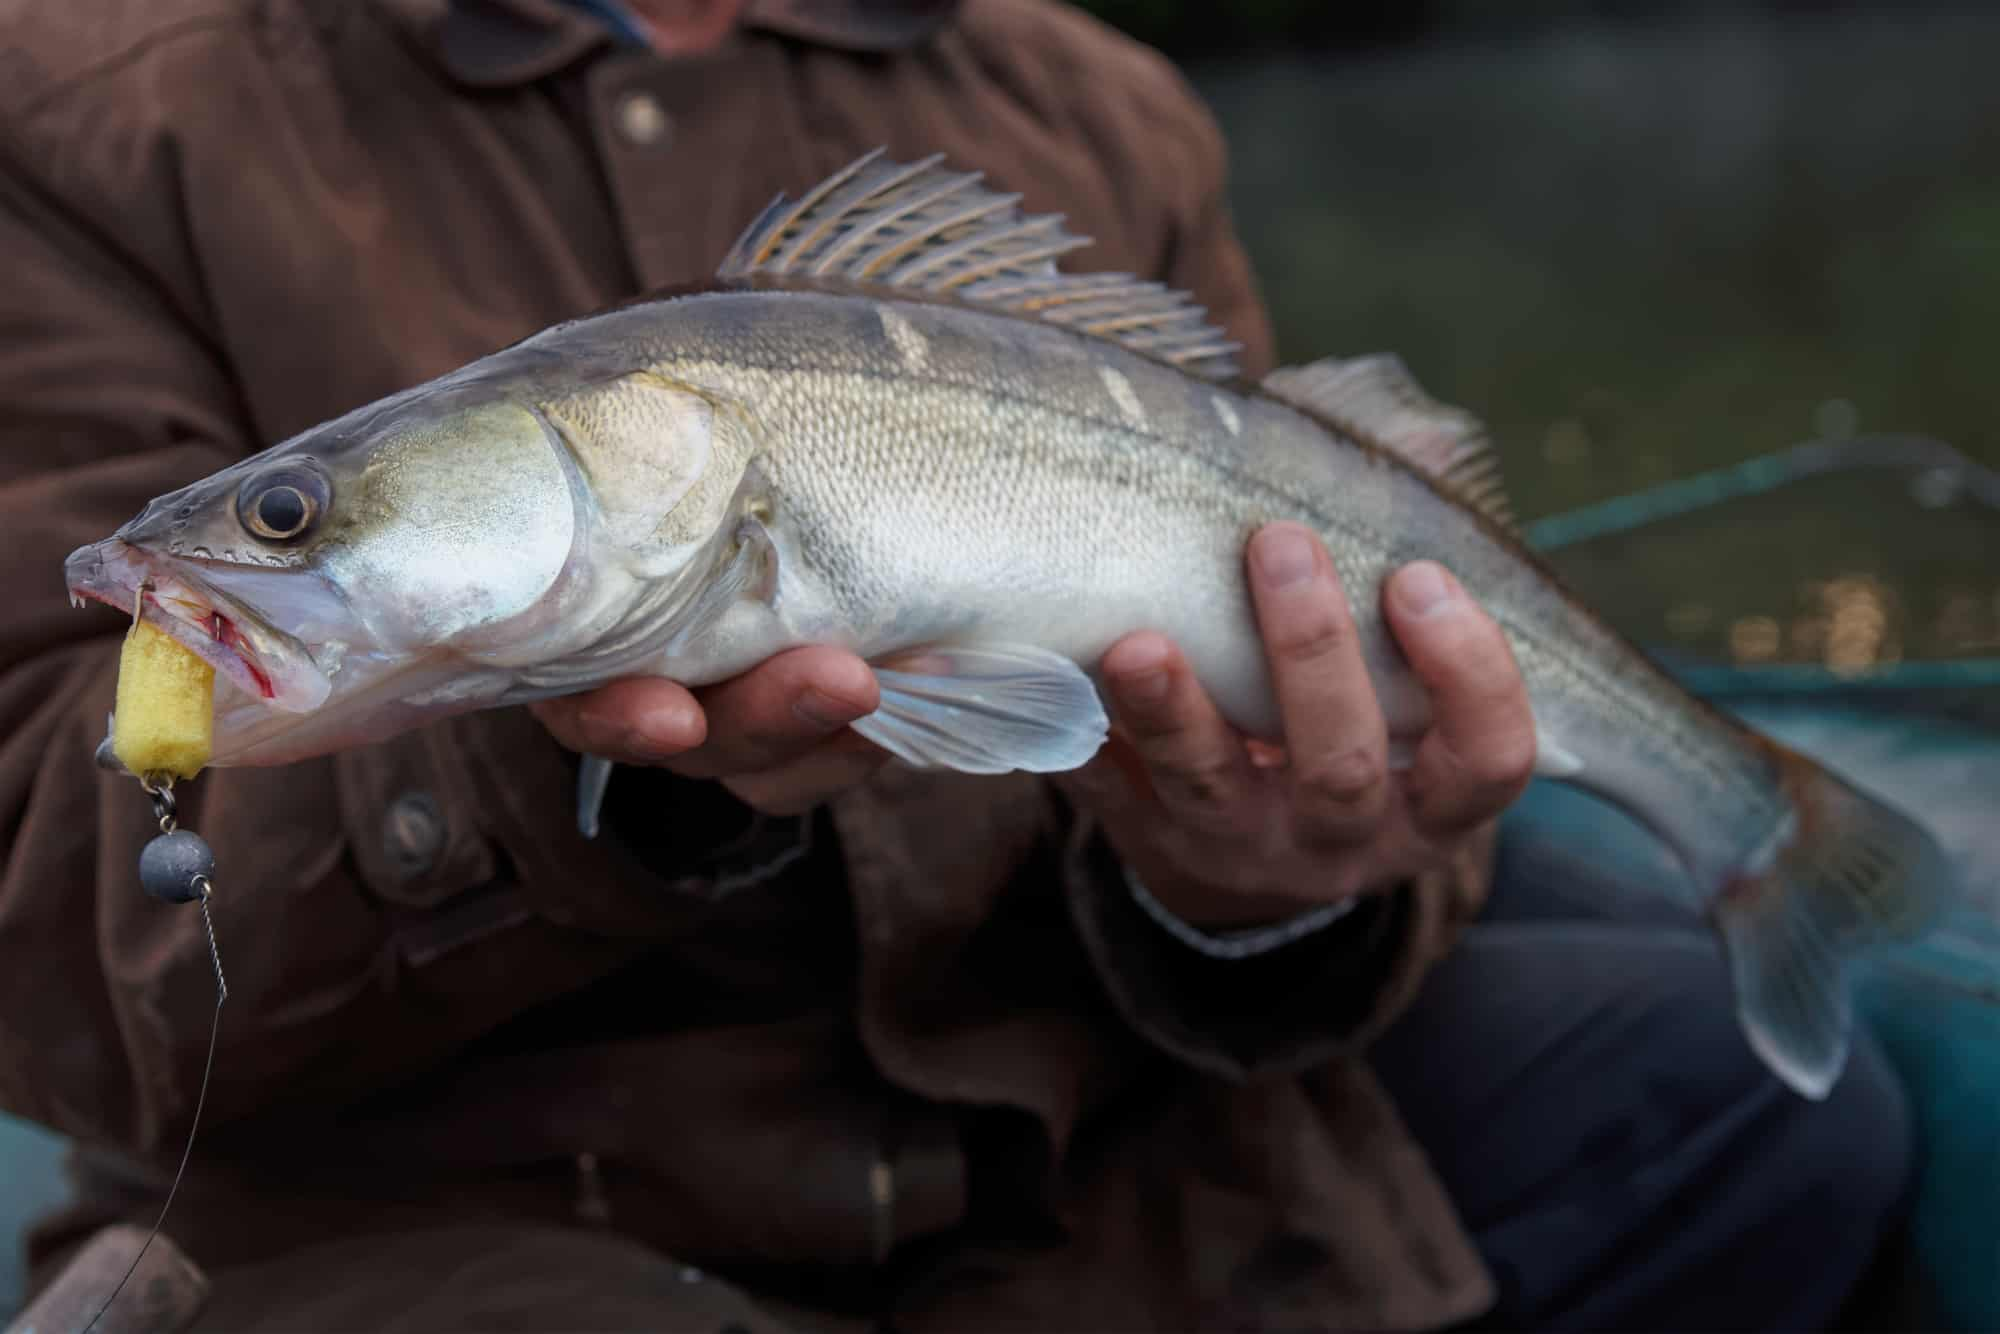 Walleye Fishing Tips: How to Fish for and Catch Walleye